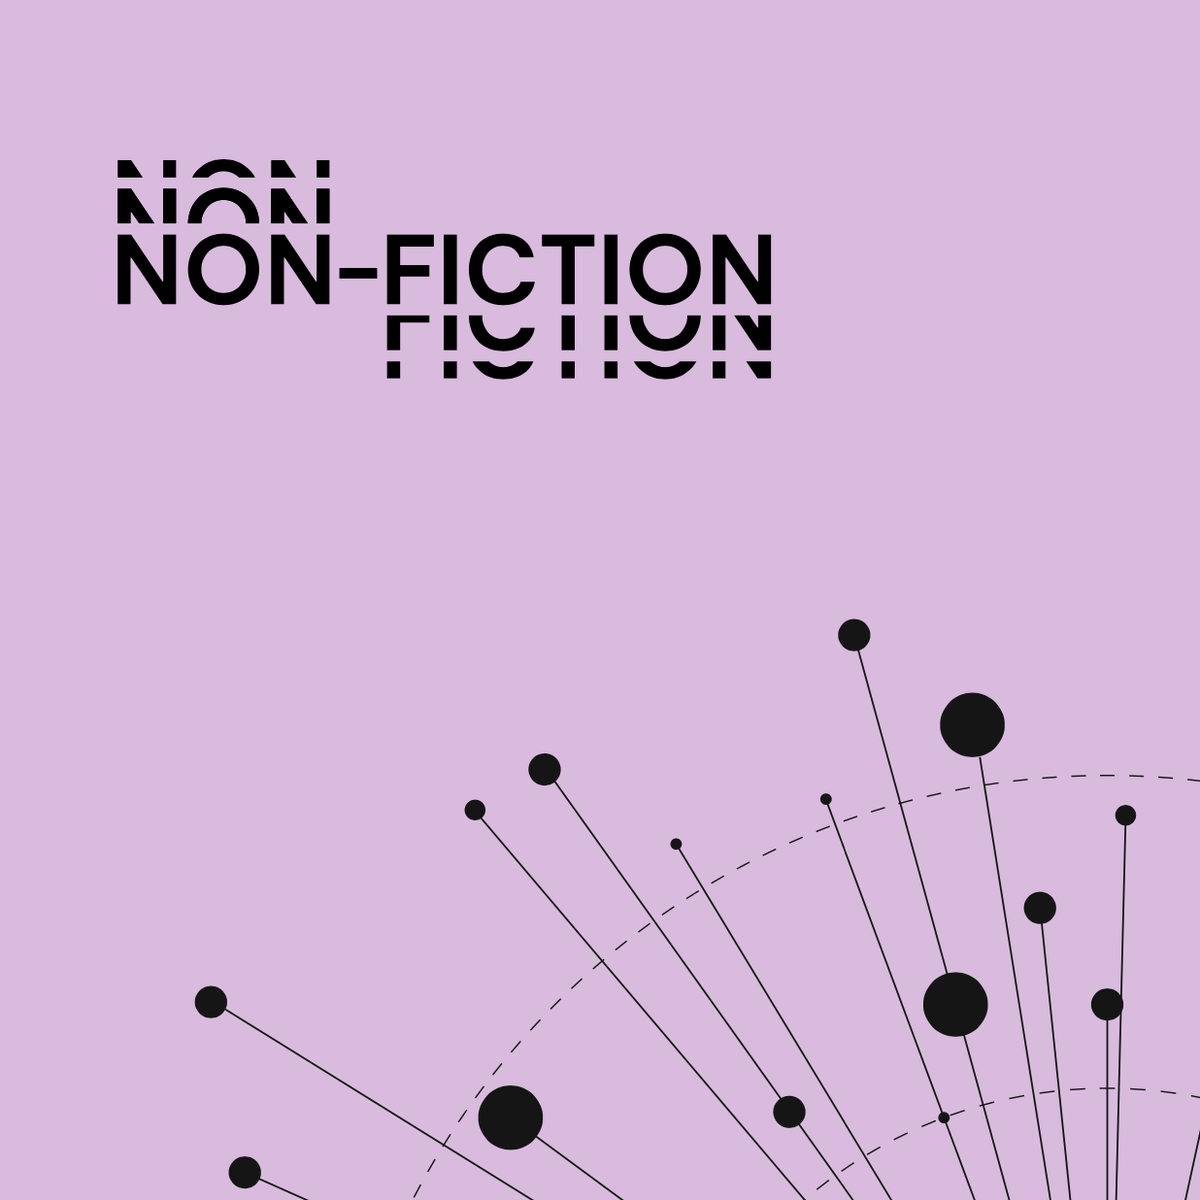 Non-Fiction 02 - NETWORK